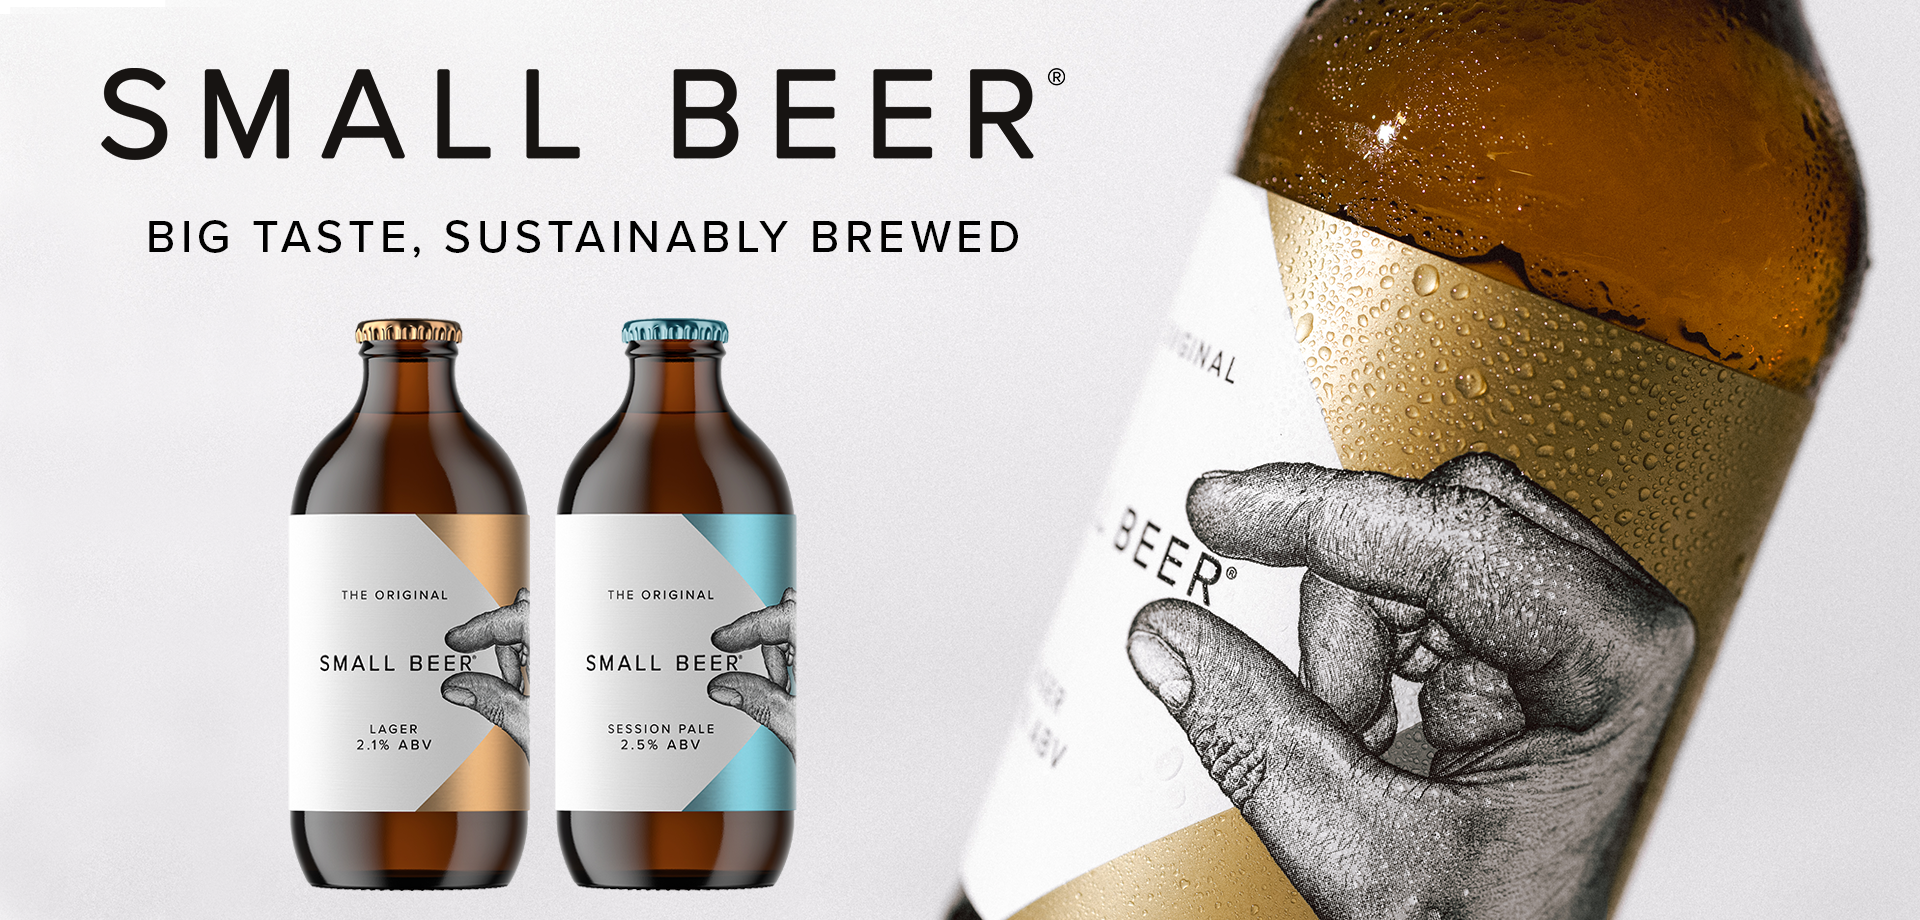 Low Alcohol Craft Beer from Small Beer Co.